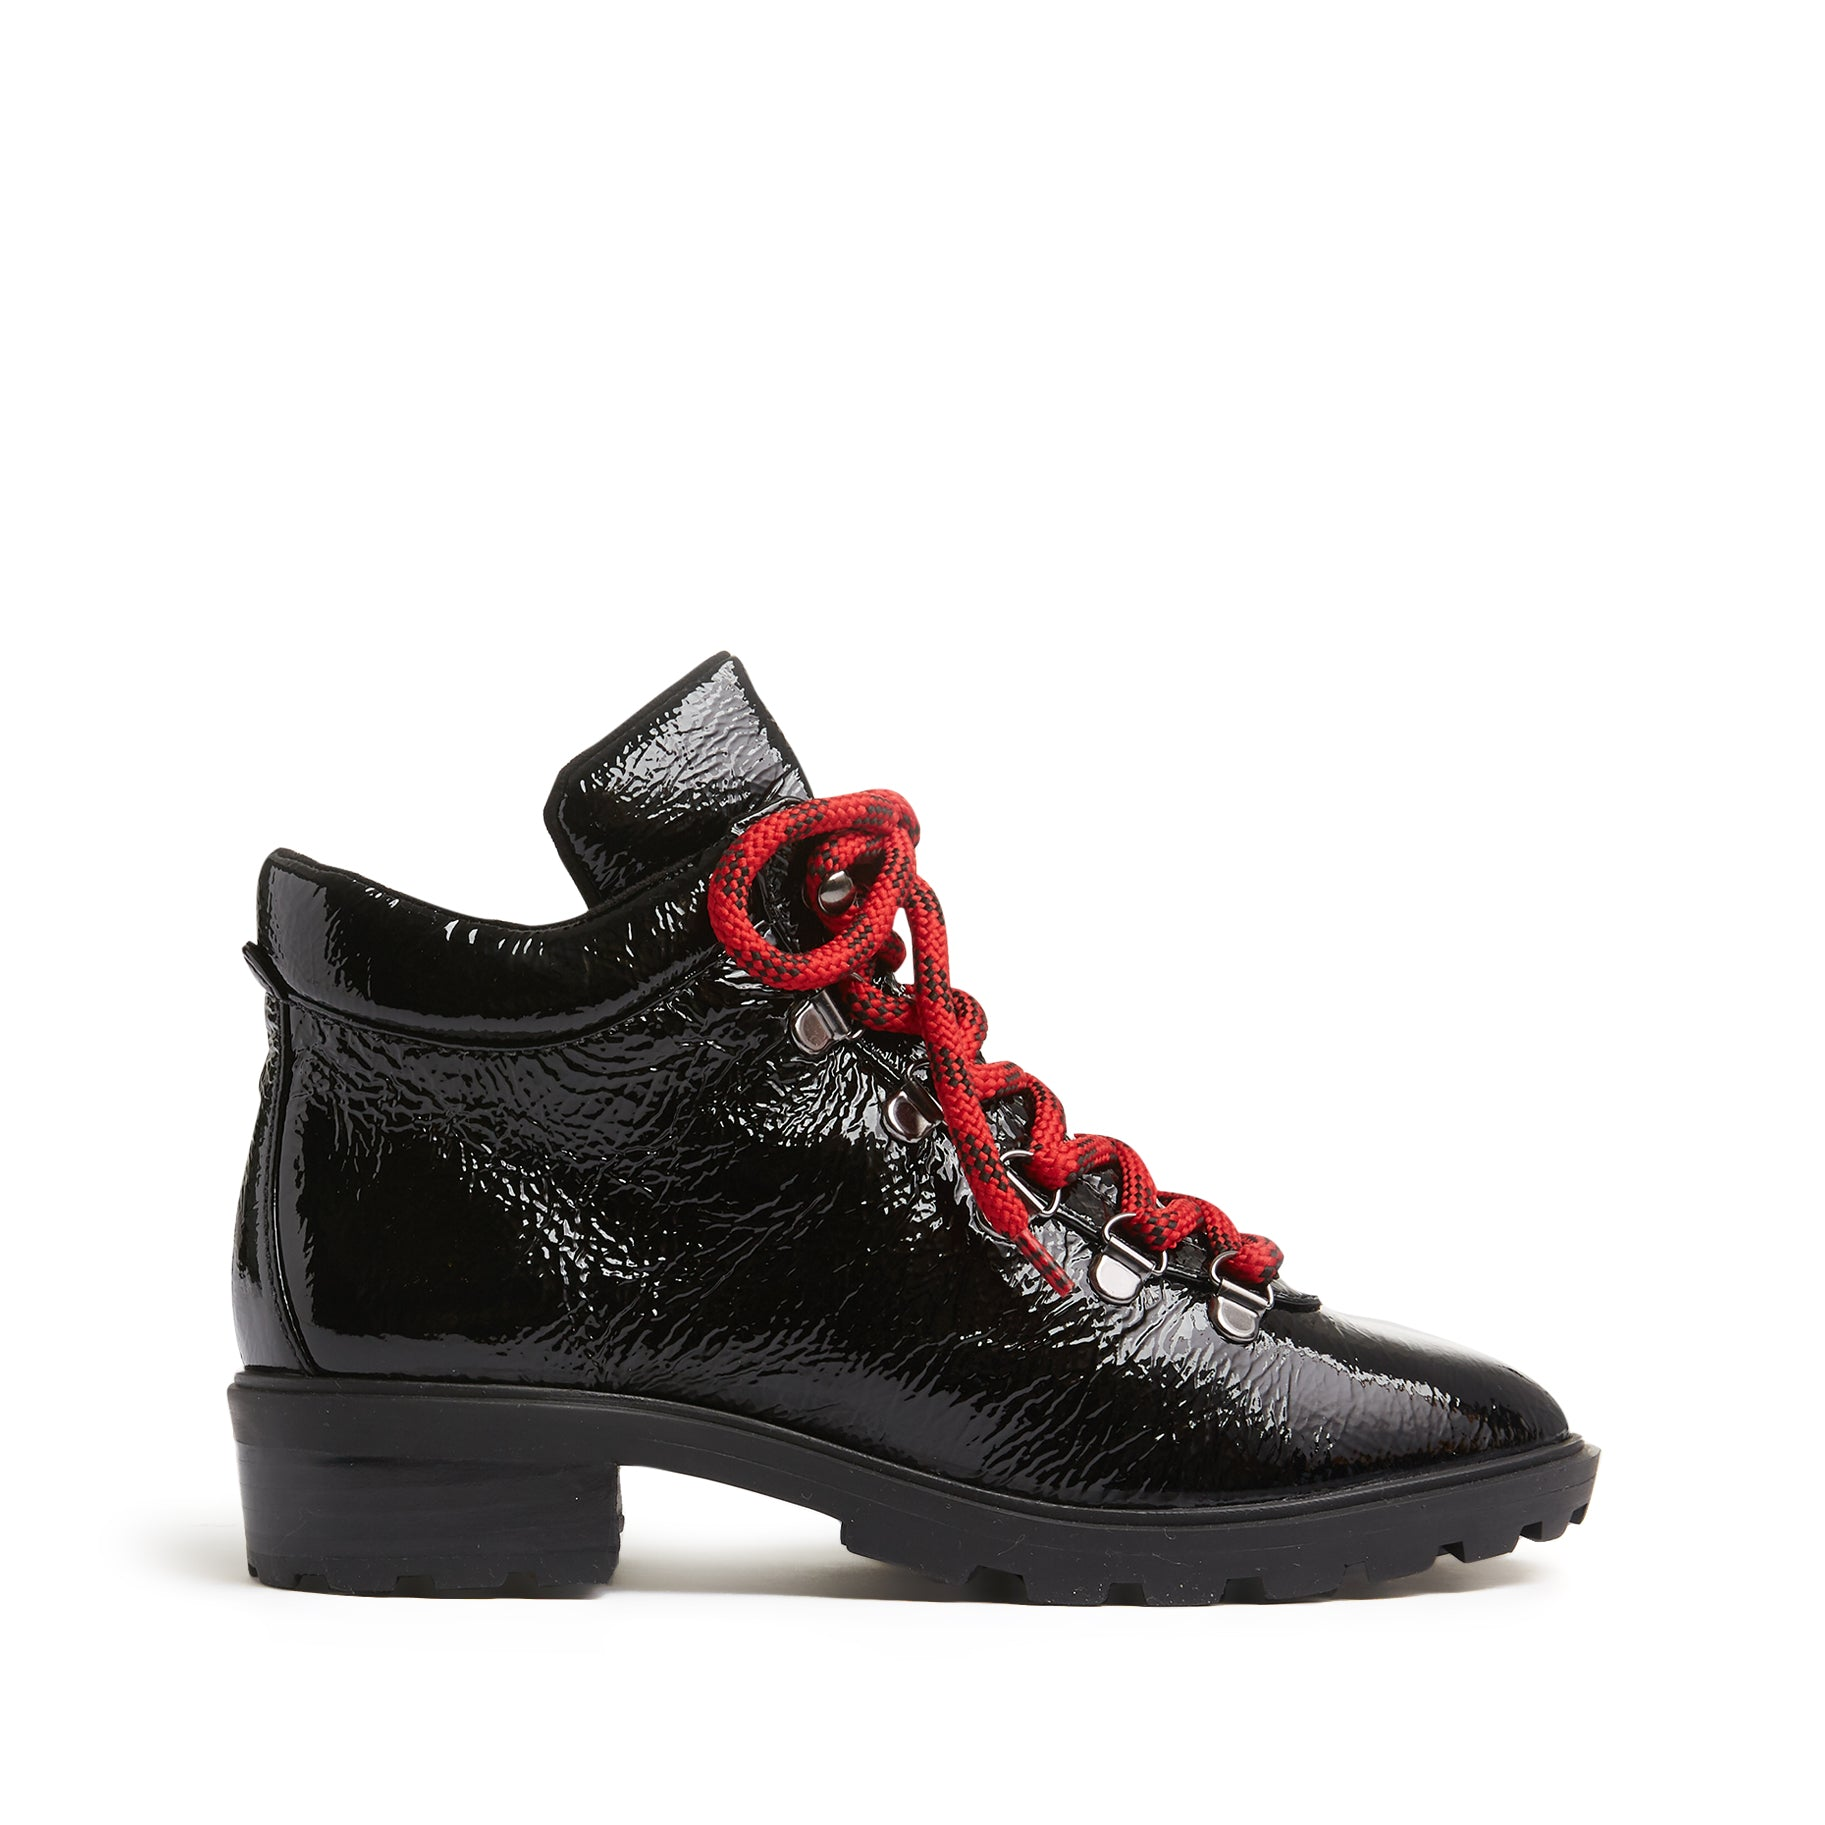 Niceia Booties Black Patent Leather